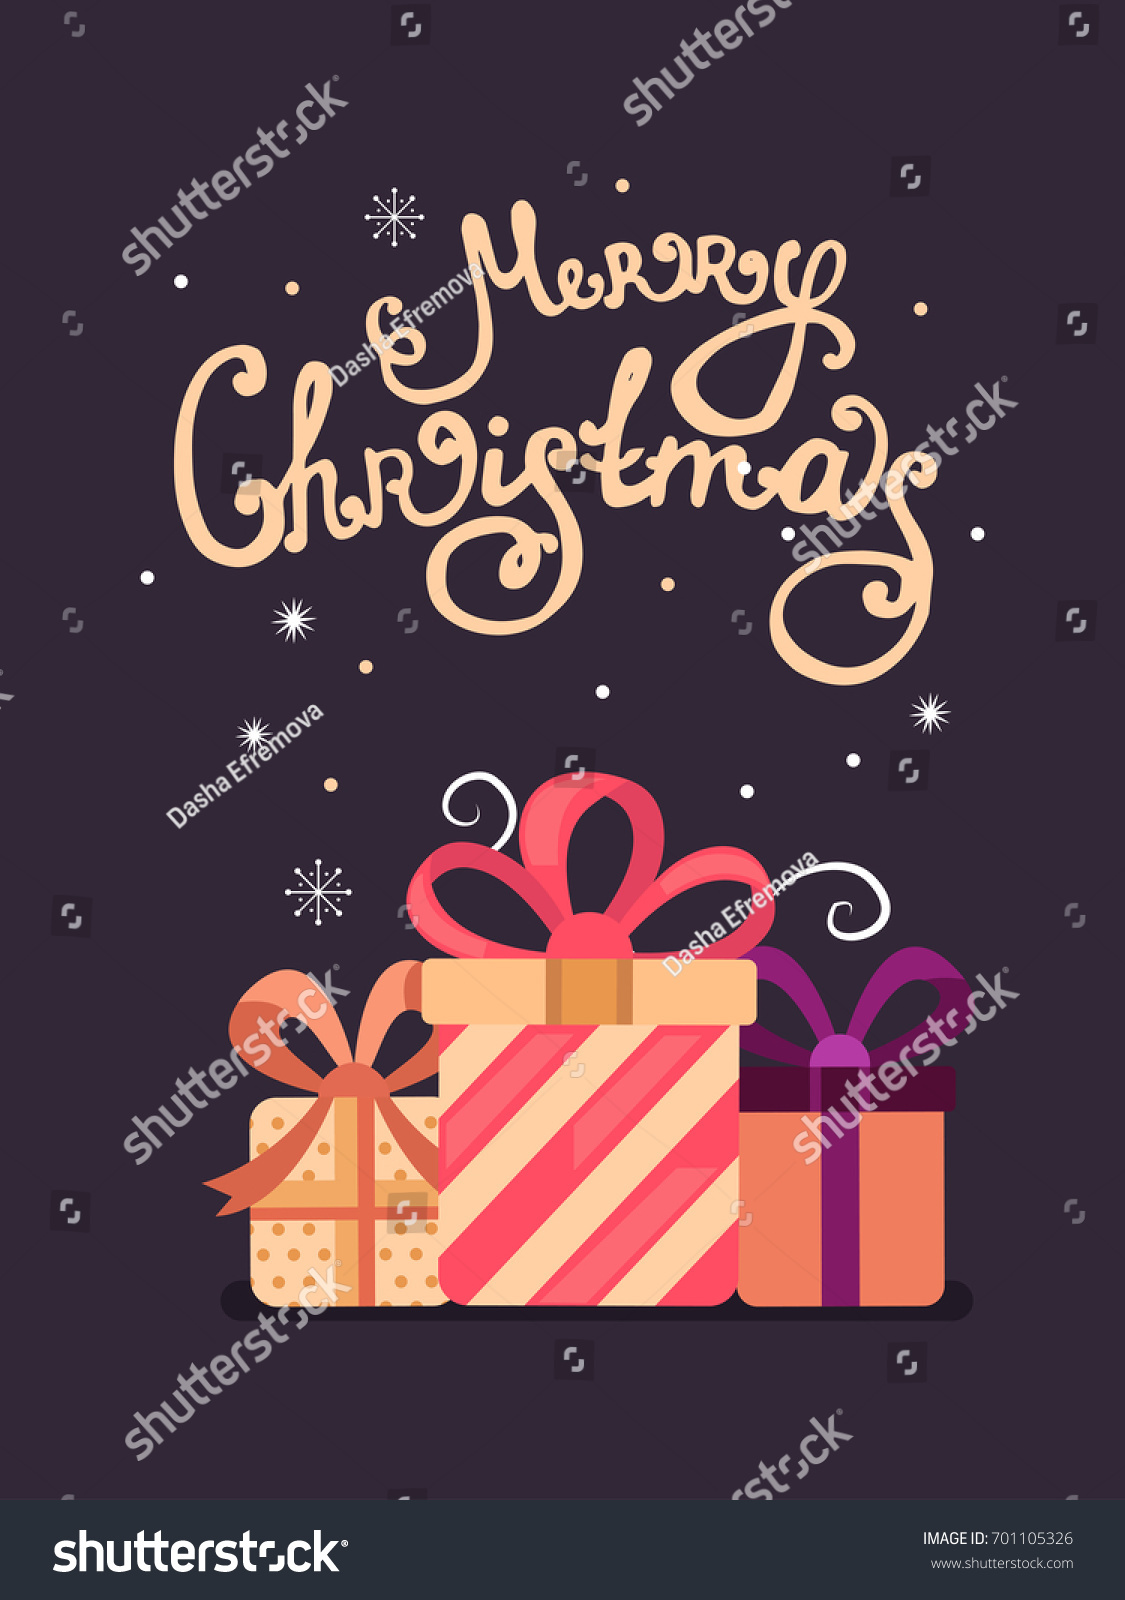 Merry christmas greeting cards gifts template stock illustration merry christmas greeting cards gifts template stock illustration 701105326 shutterstock m4hsunfo